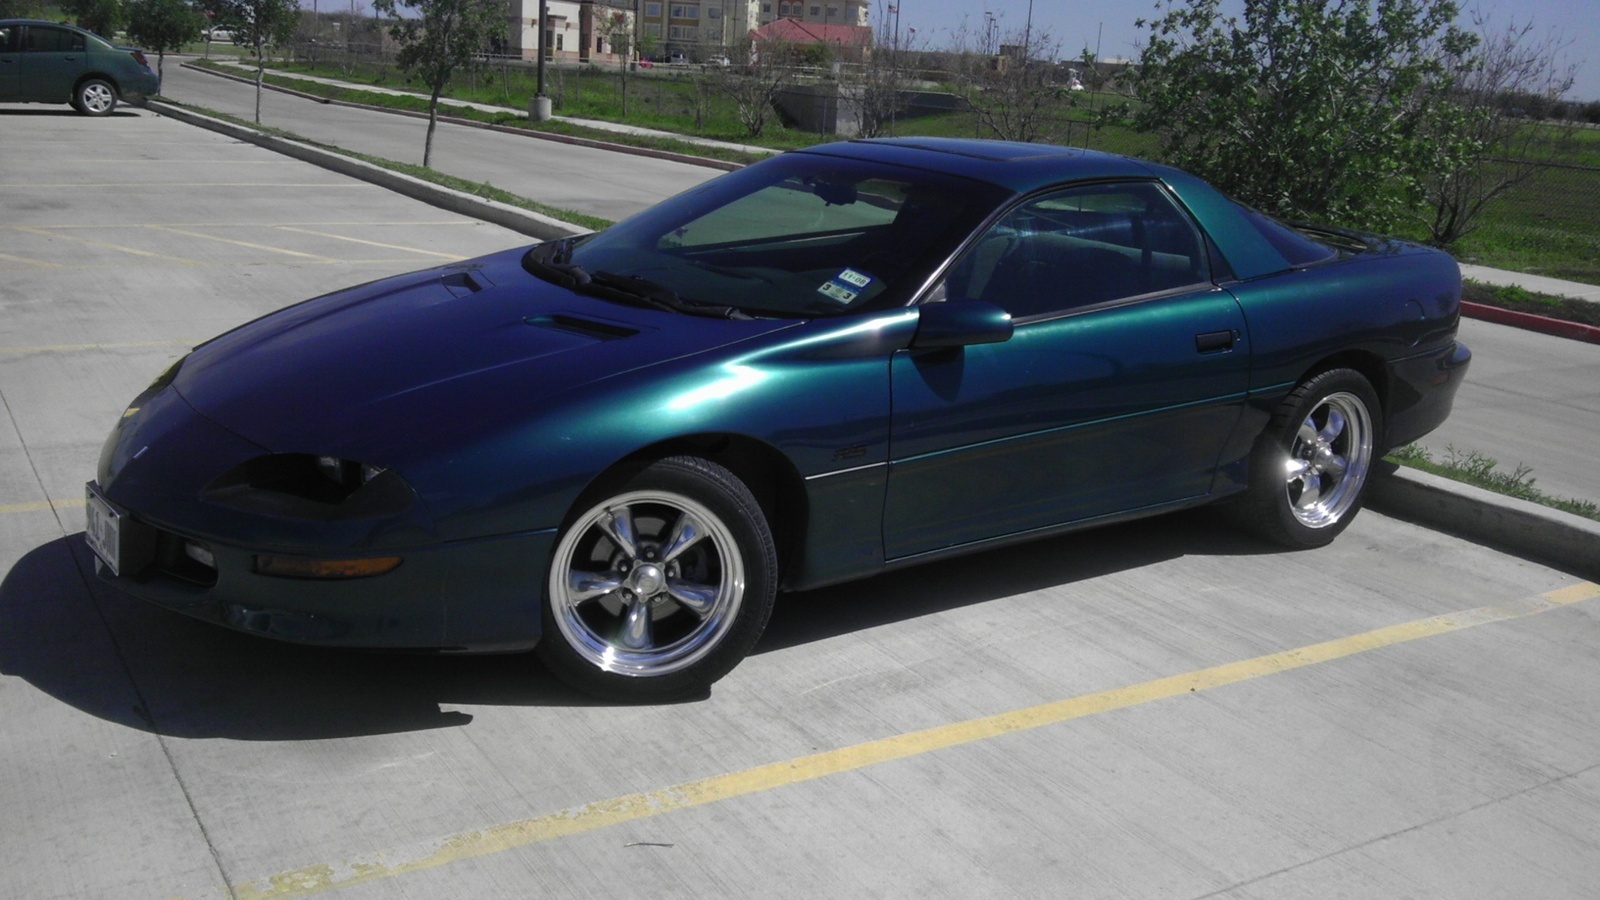 Camaro 1997 chevrolet camaro coupe : Chevrolet Camaro Questions - Is mine a true 30th anniversary rs ...